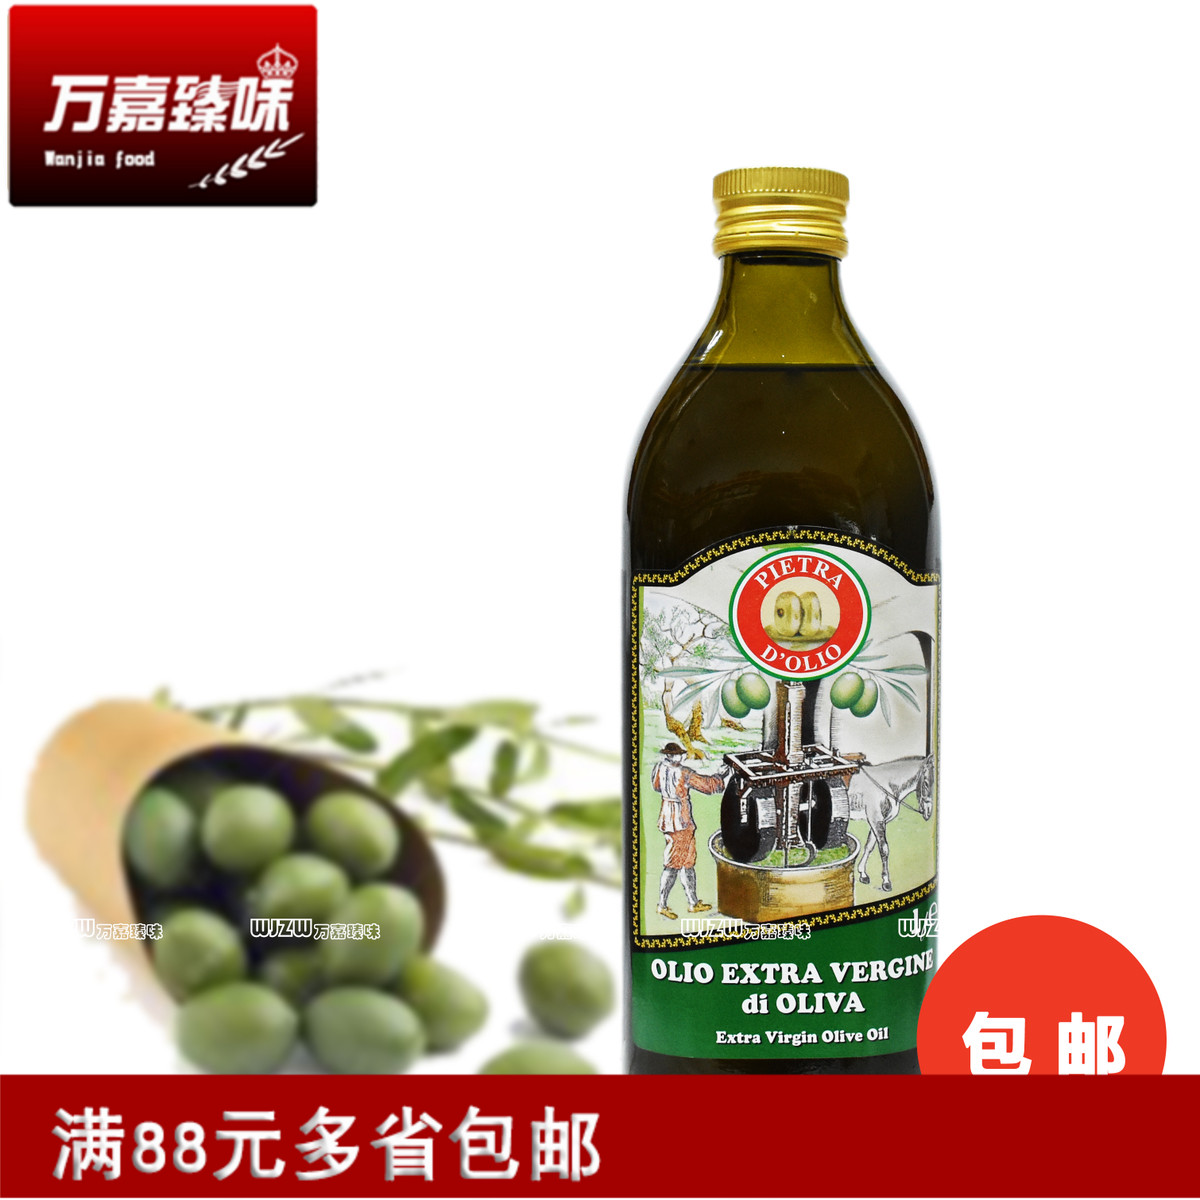 Buy Olive oil, Wholesale Olive oil, Cheap Olive oil from China Olive